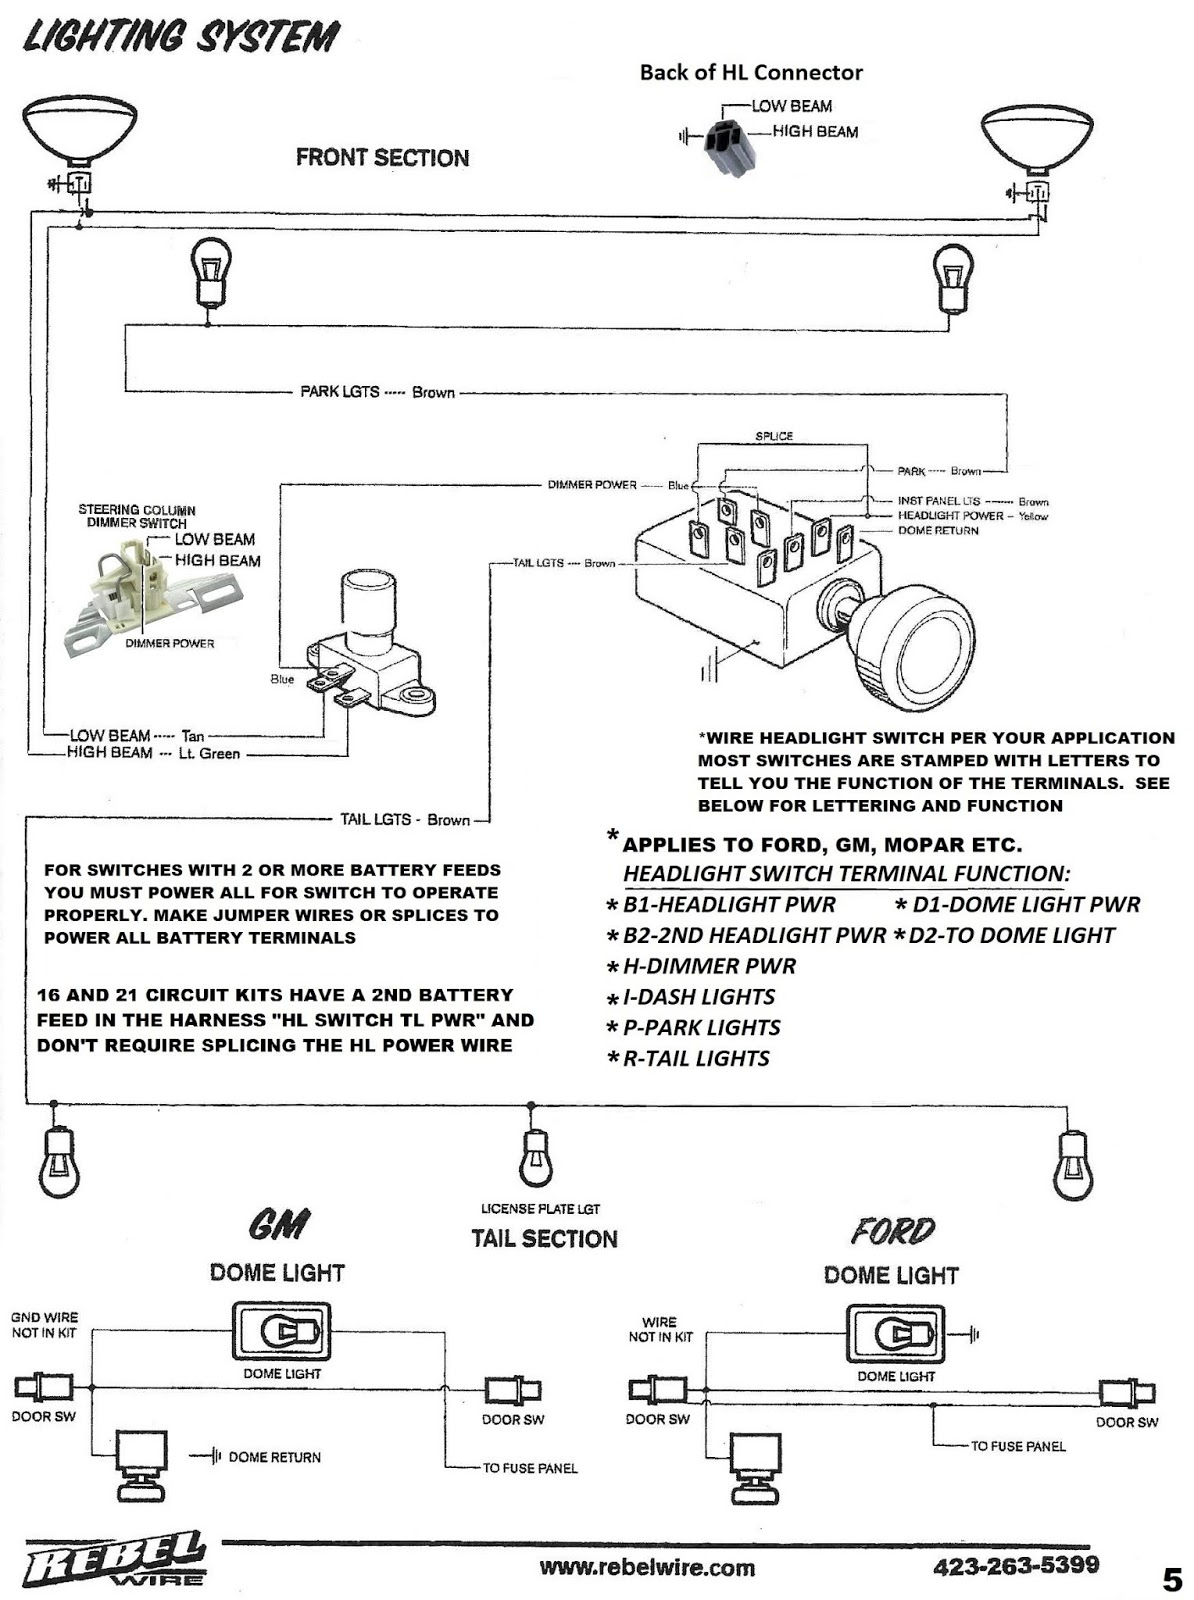 medium resolution of vp instrument cluster help asapl3vndashwiringjpg wiring diagramdome light wiring diagram together with chevy dome light wiring